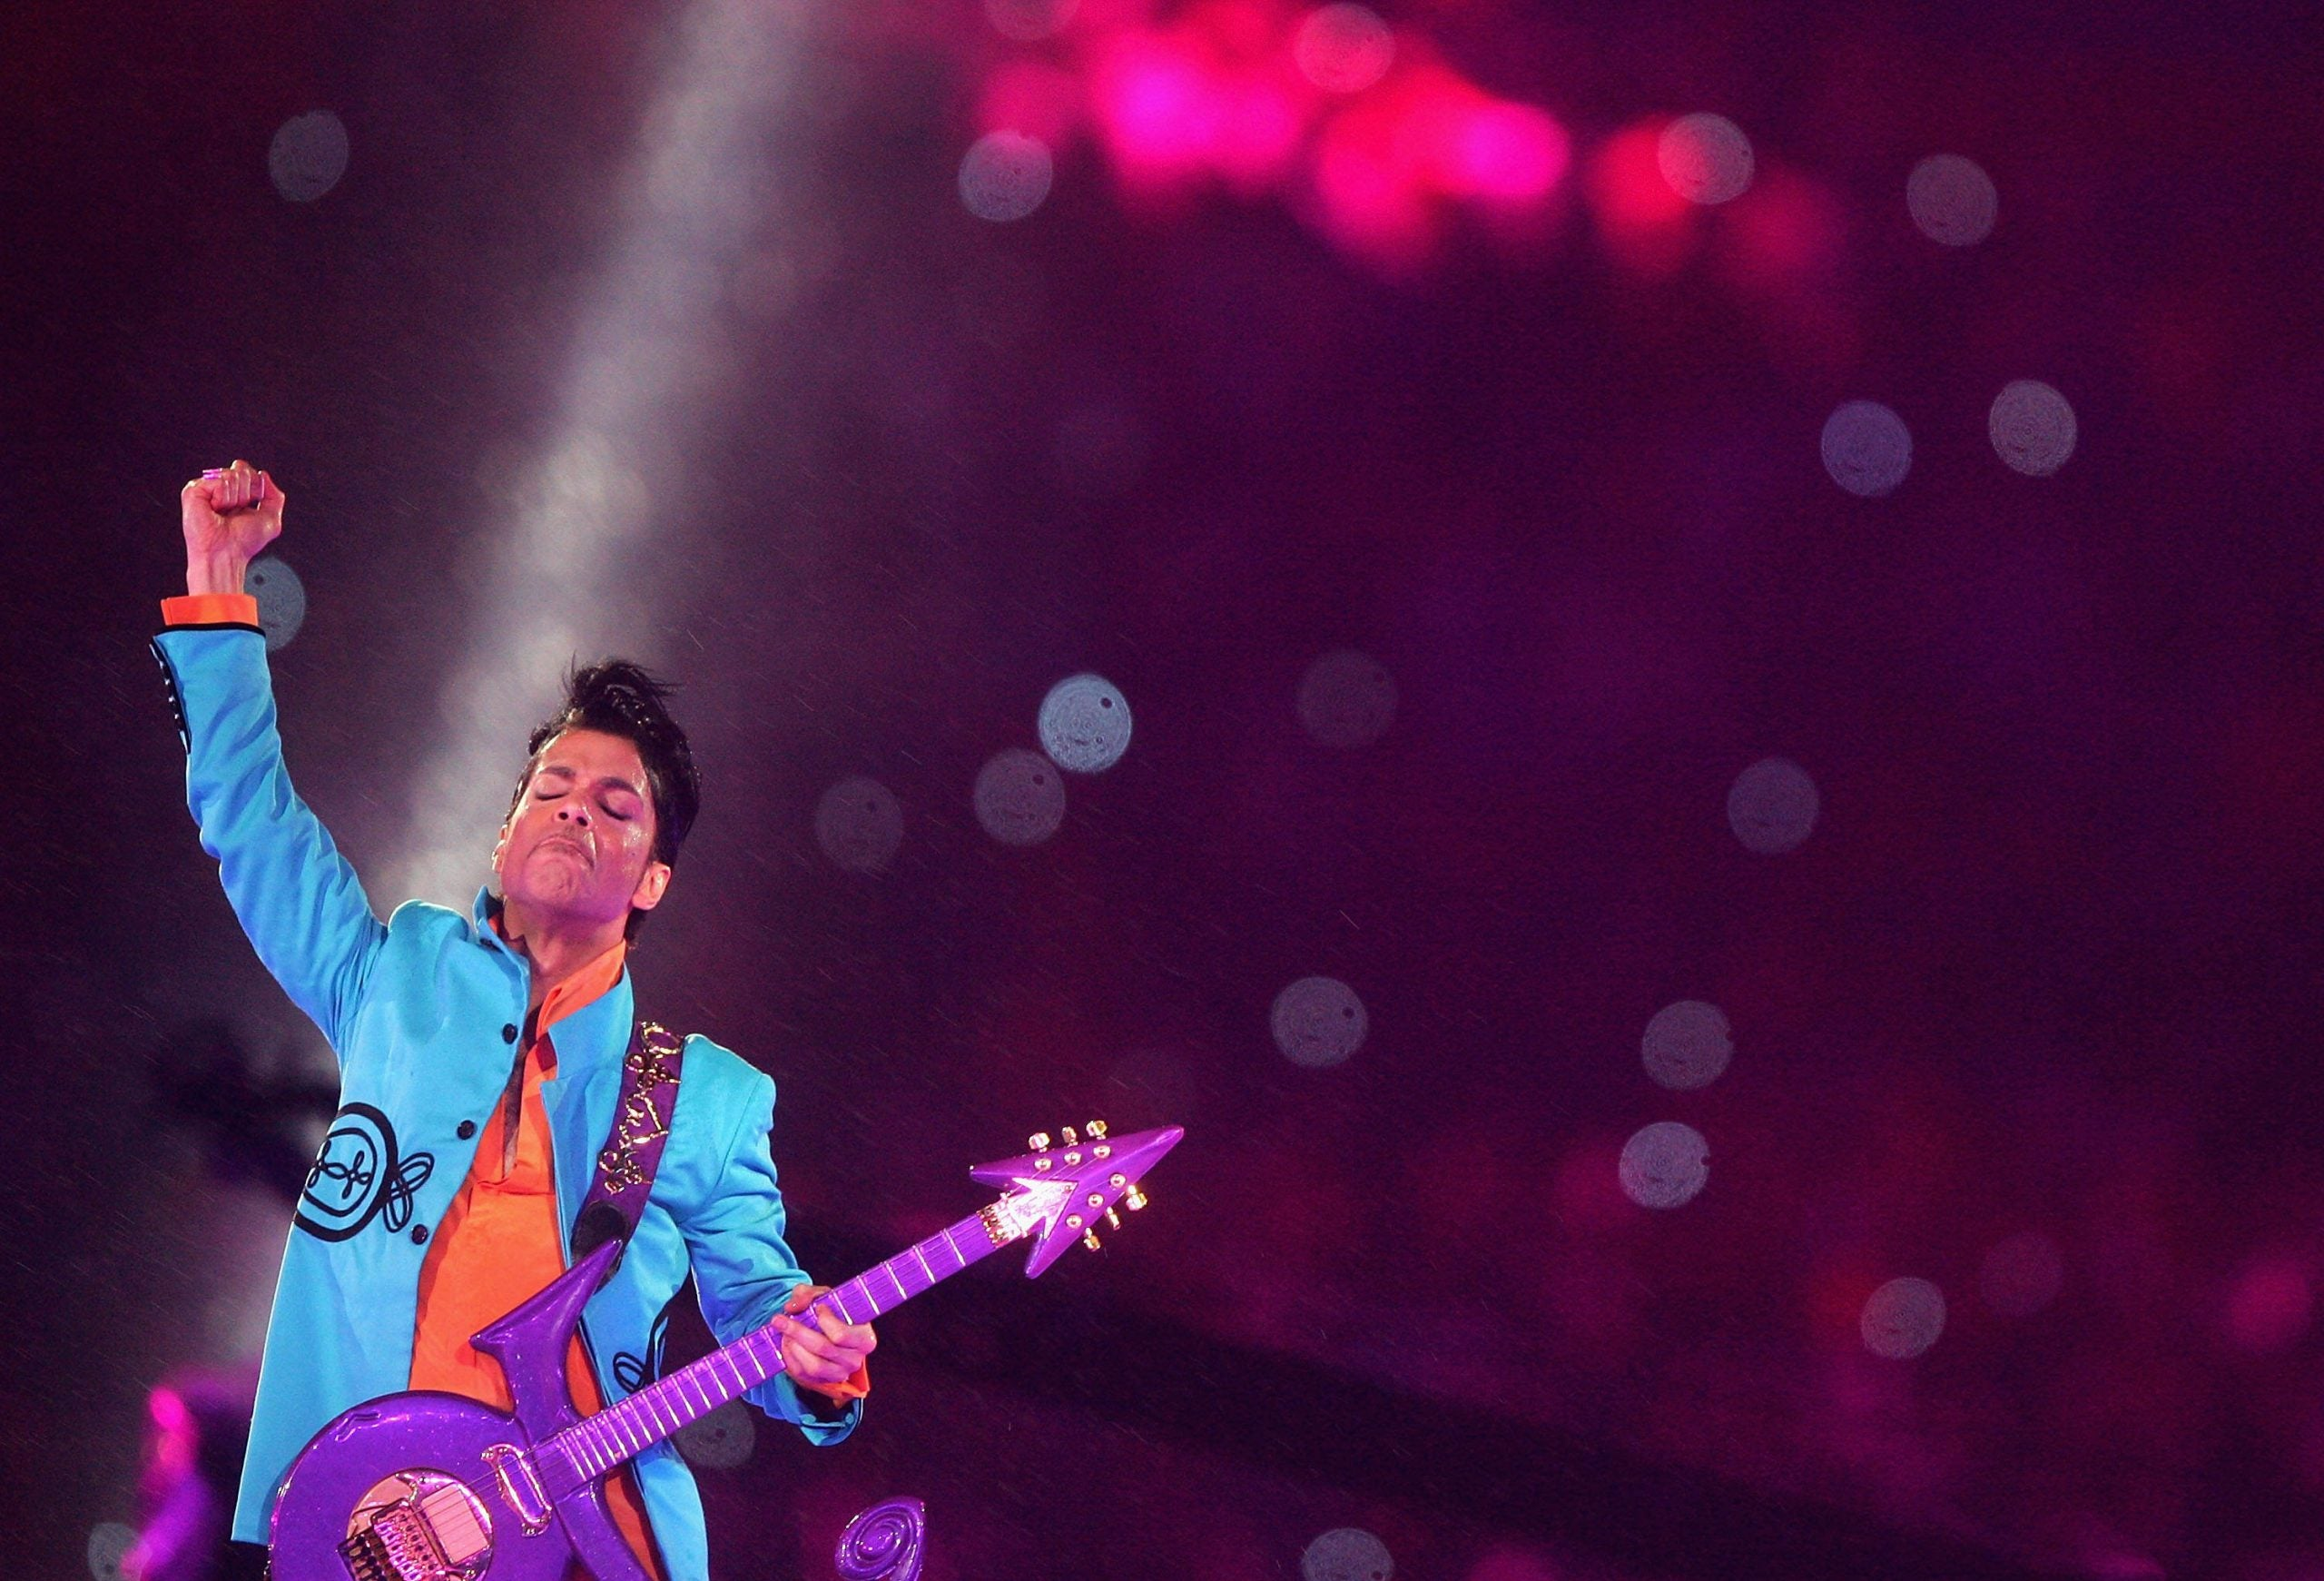 Prince's death rips a hole in the fabric of popular music